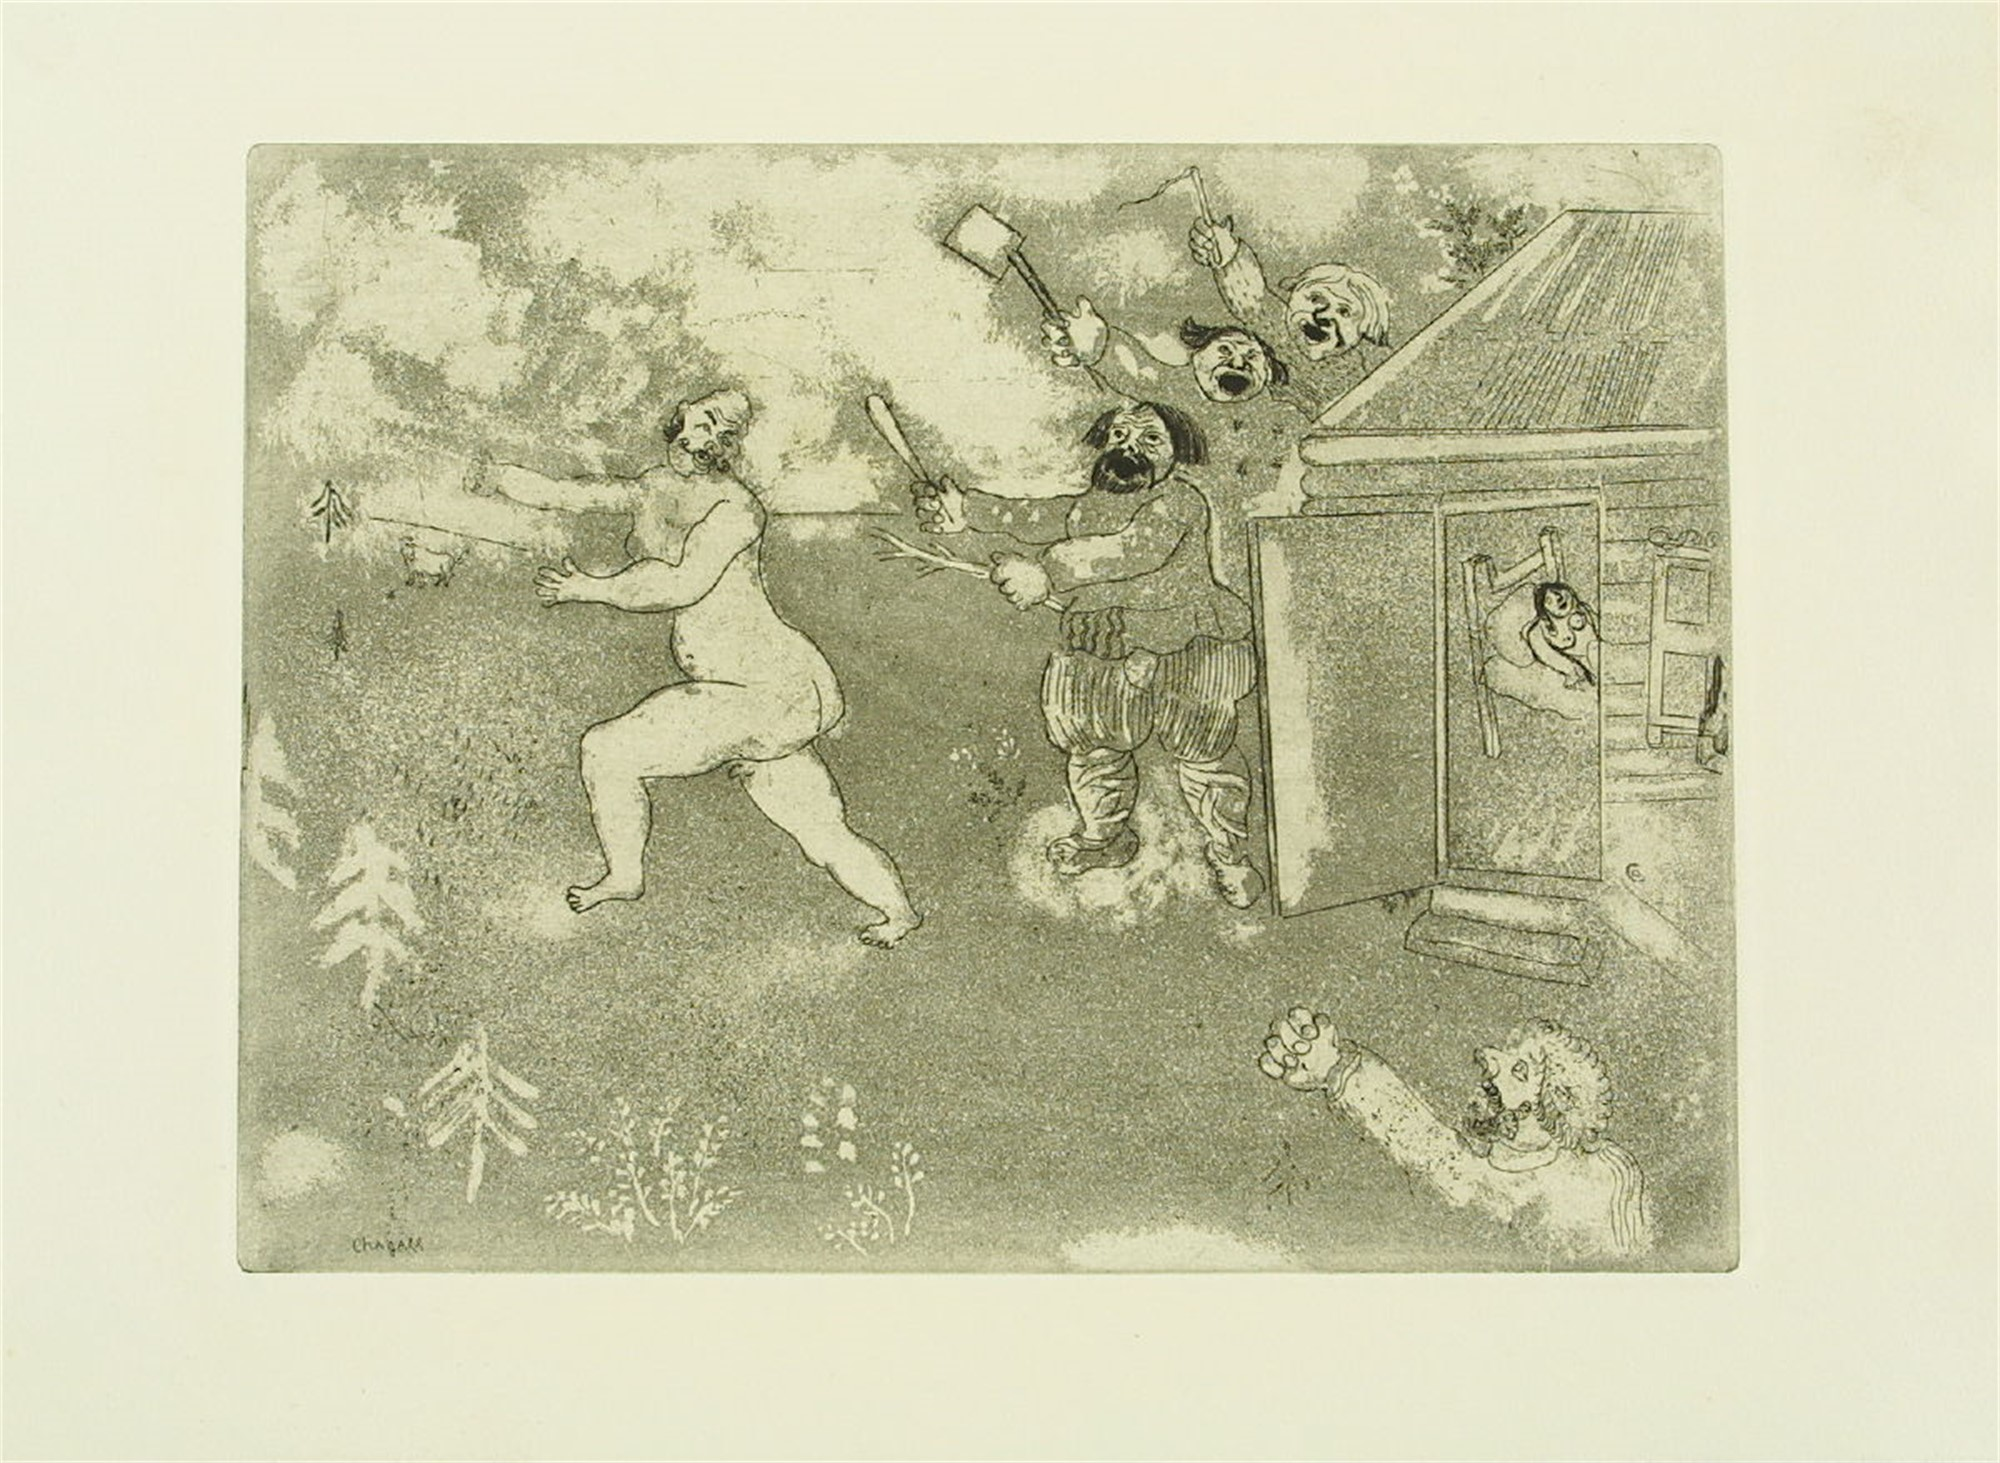 La Fuite Tout Nu (Escape in Nature's Grab) by Marc Chagall